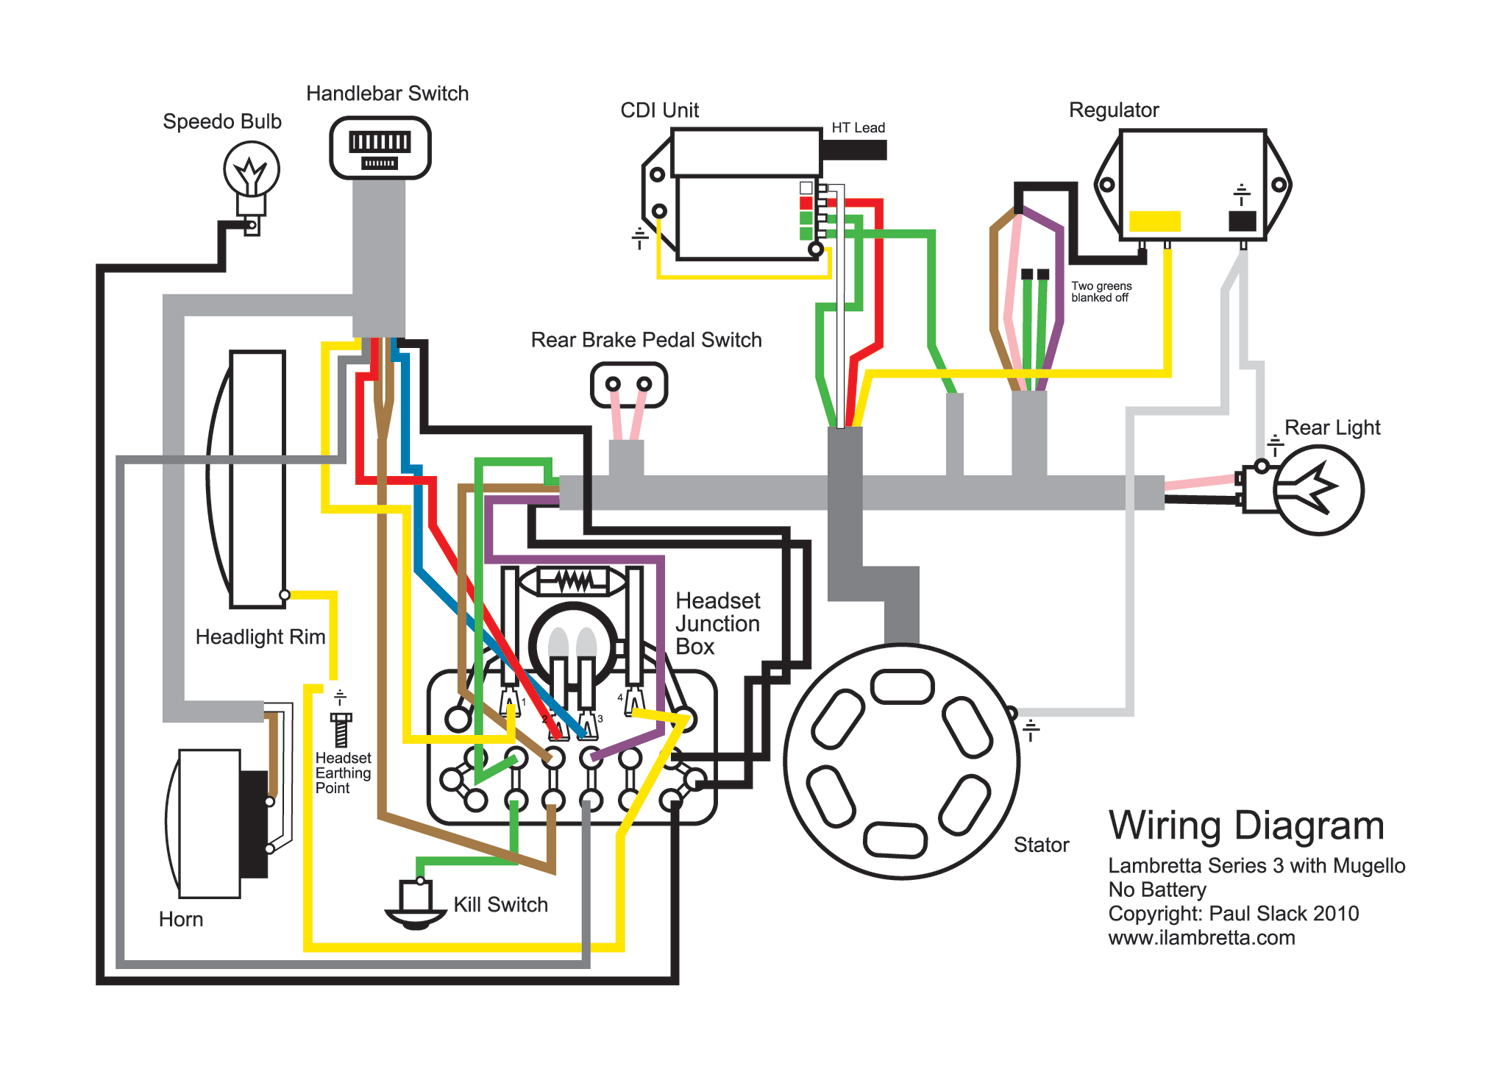 Li150 Wiring lambretta wiring diagram outlet wiring \u2022 free wiring diagrams lambretta headset wiring diagram at aneh.co